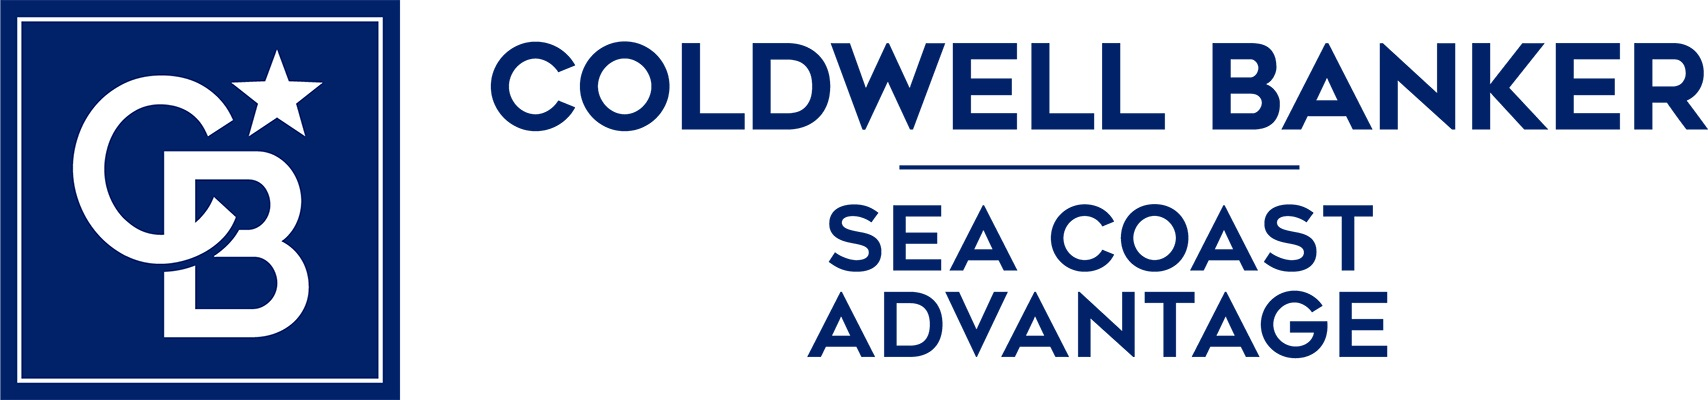 John Hussmann - Coldwell Banker Sea Coast Advantage Realty